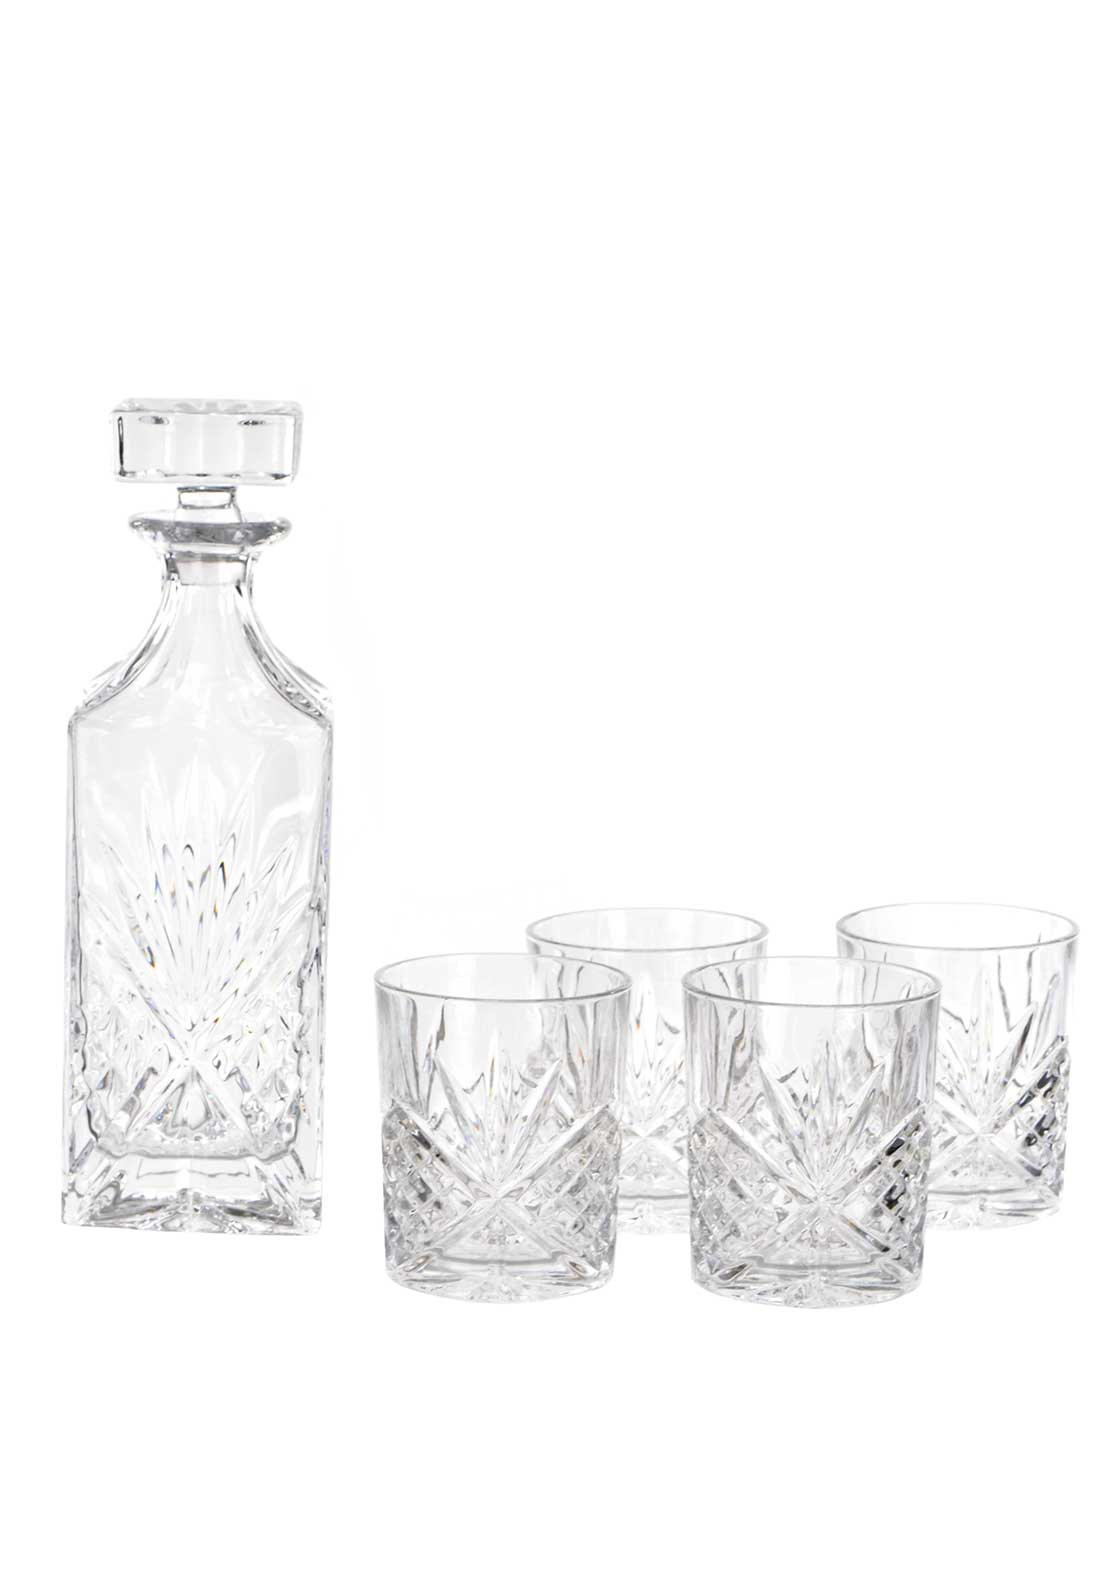 Killarney Crystal Ireland Trinity Decanter Set, Glass